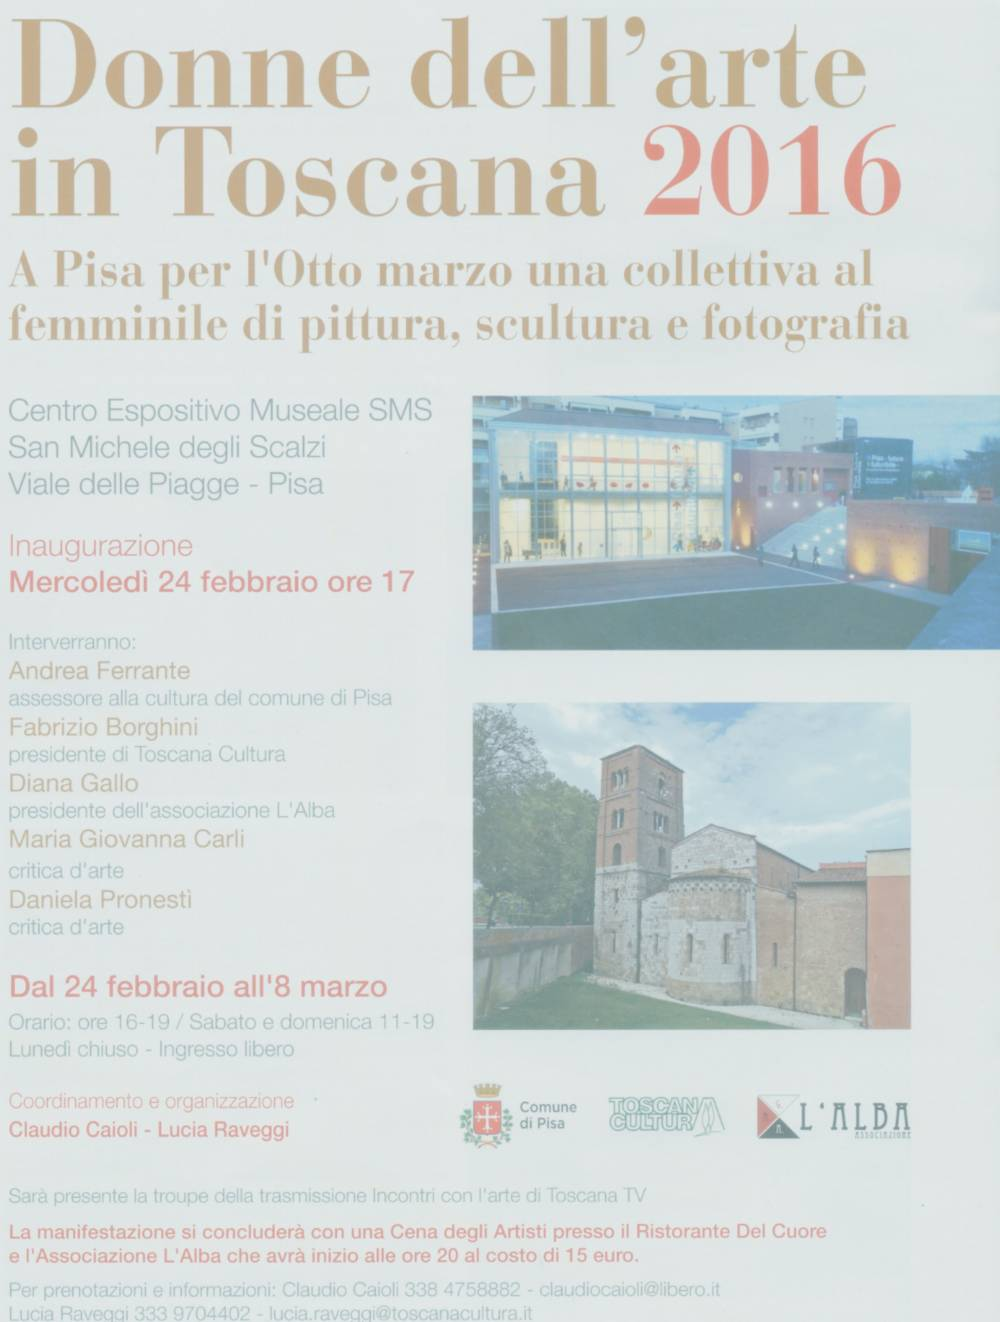 DONNE dell´ARTE in TOSCANA 2016